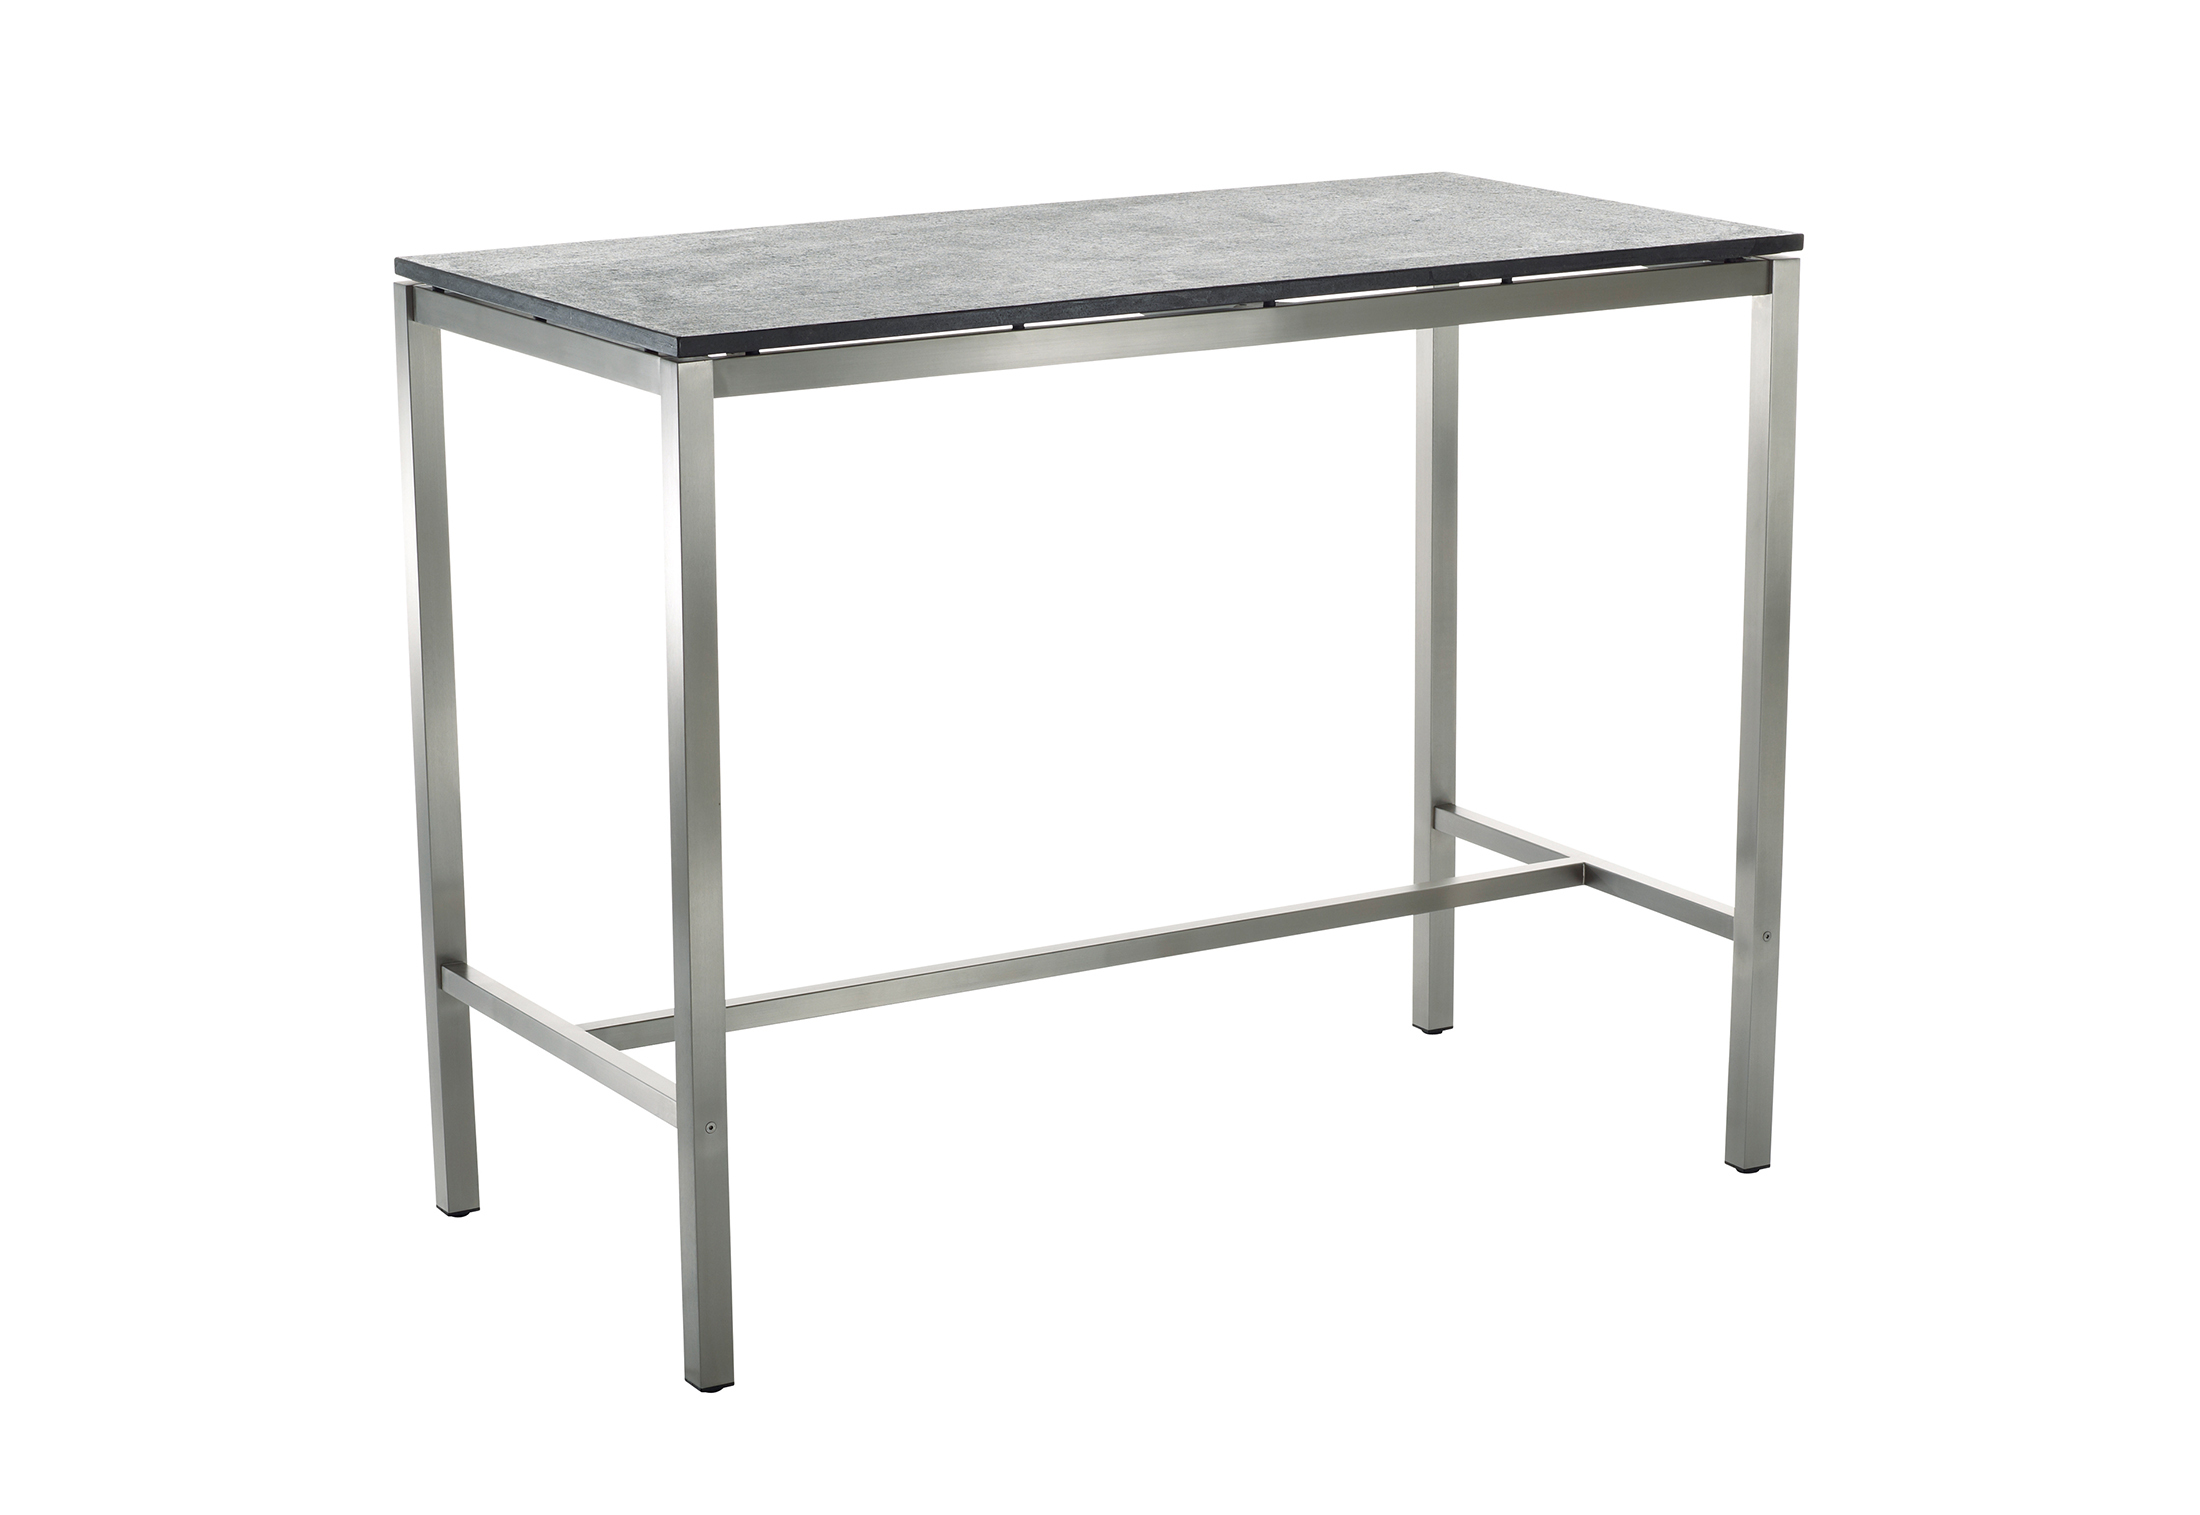 Clic Stainless Steel Bar Table